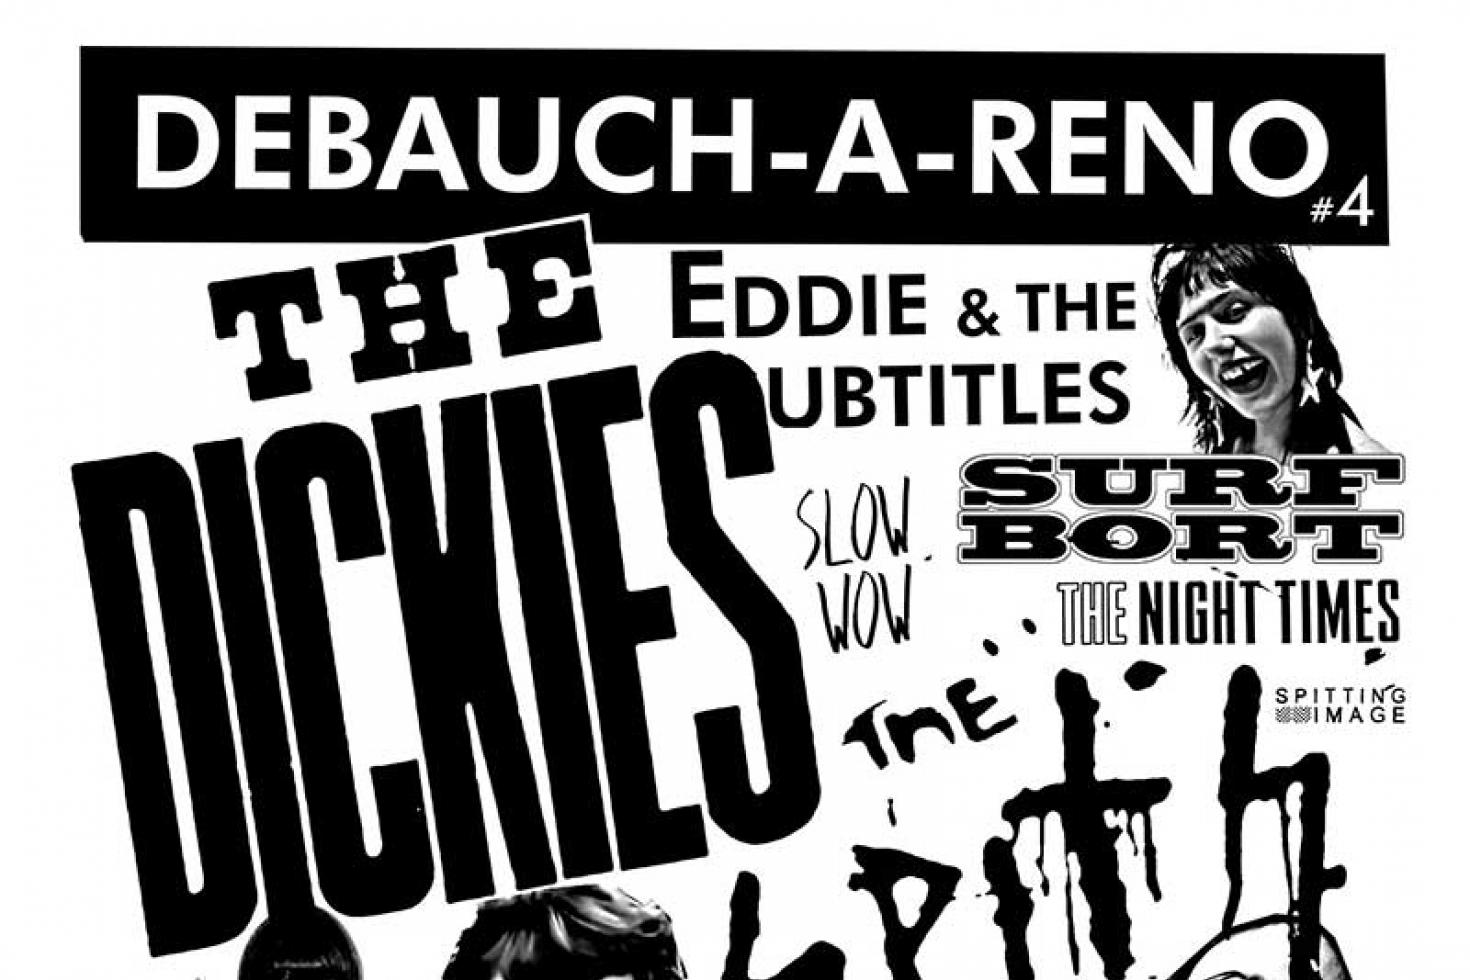 Check out the line-up on Debauch-a-Reno #4